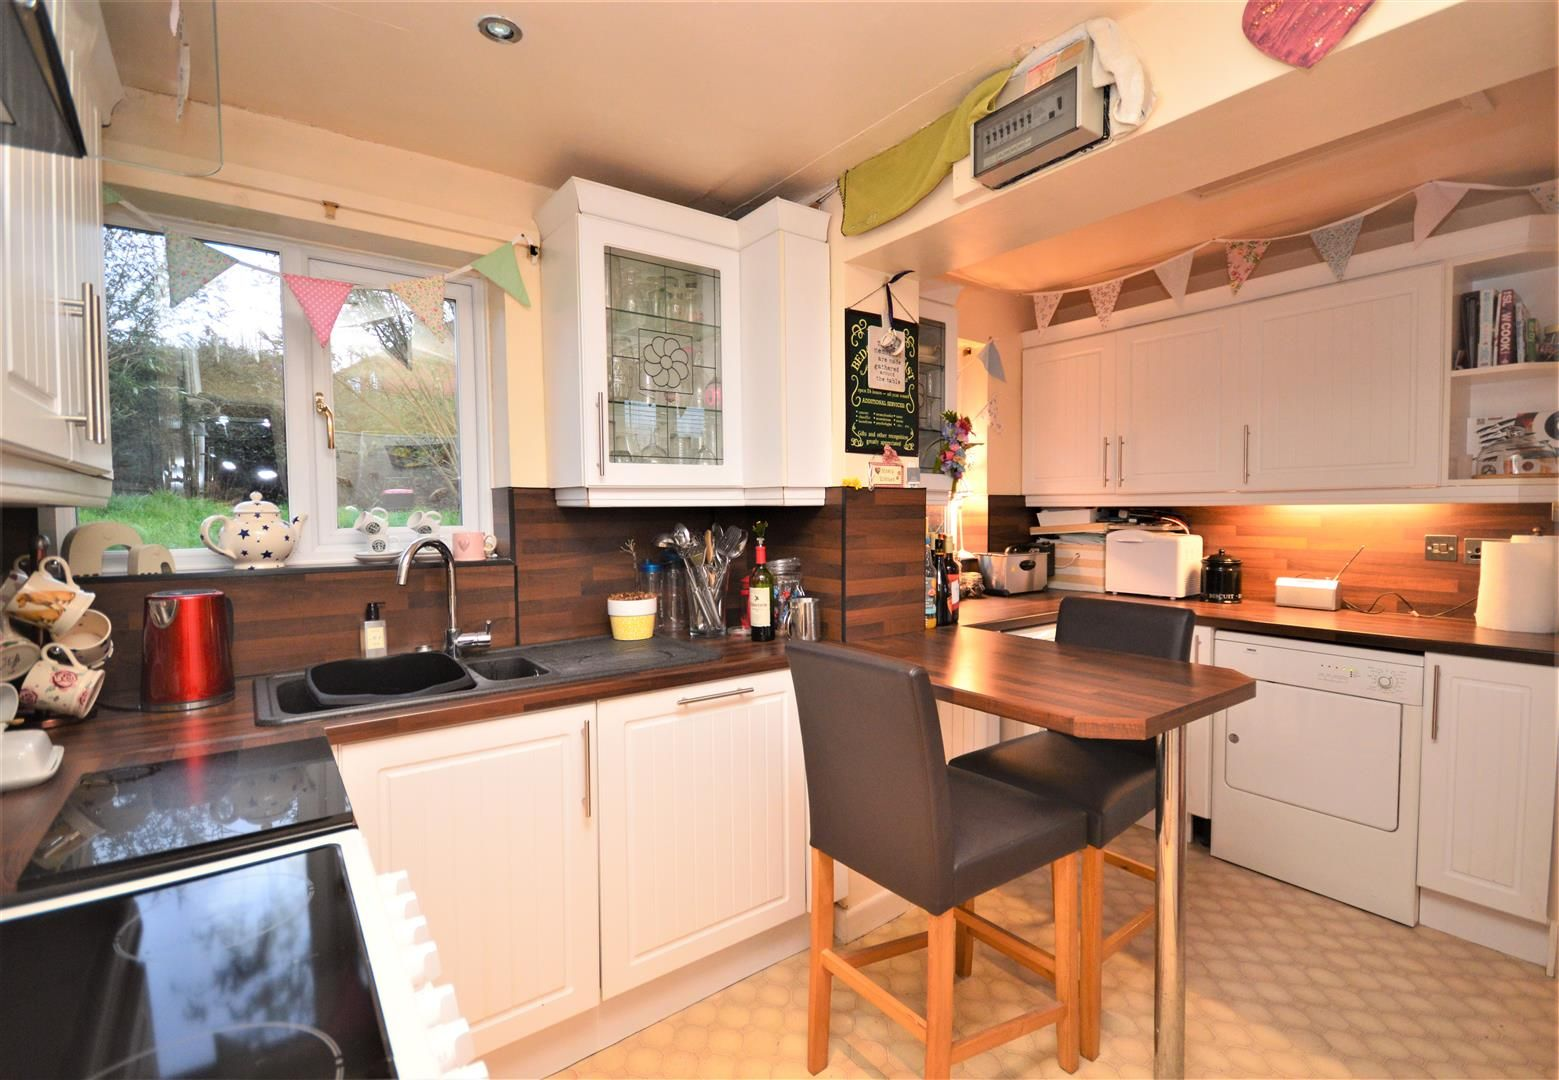 3 bed semi-detached for sale in Much Birch 5